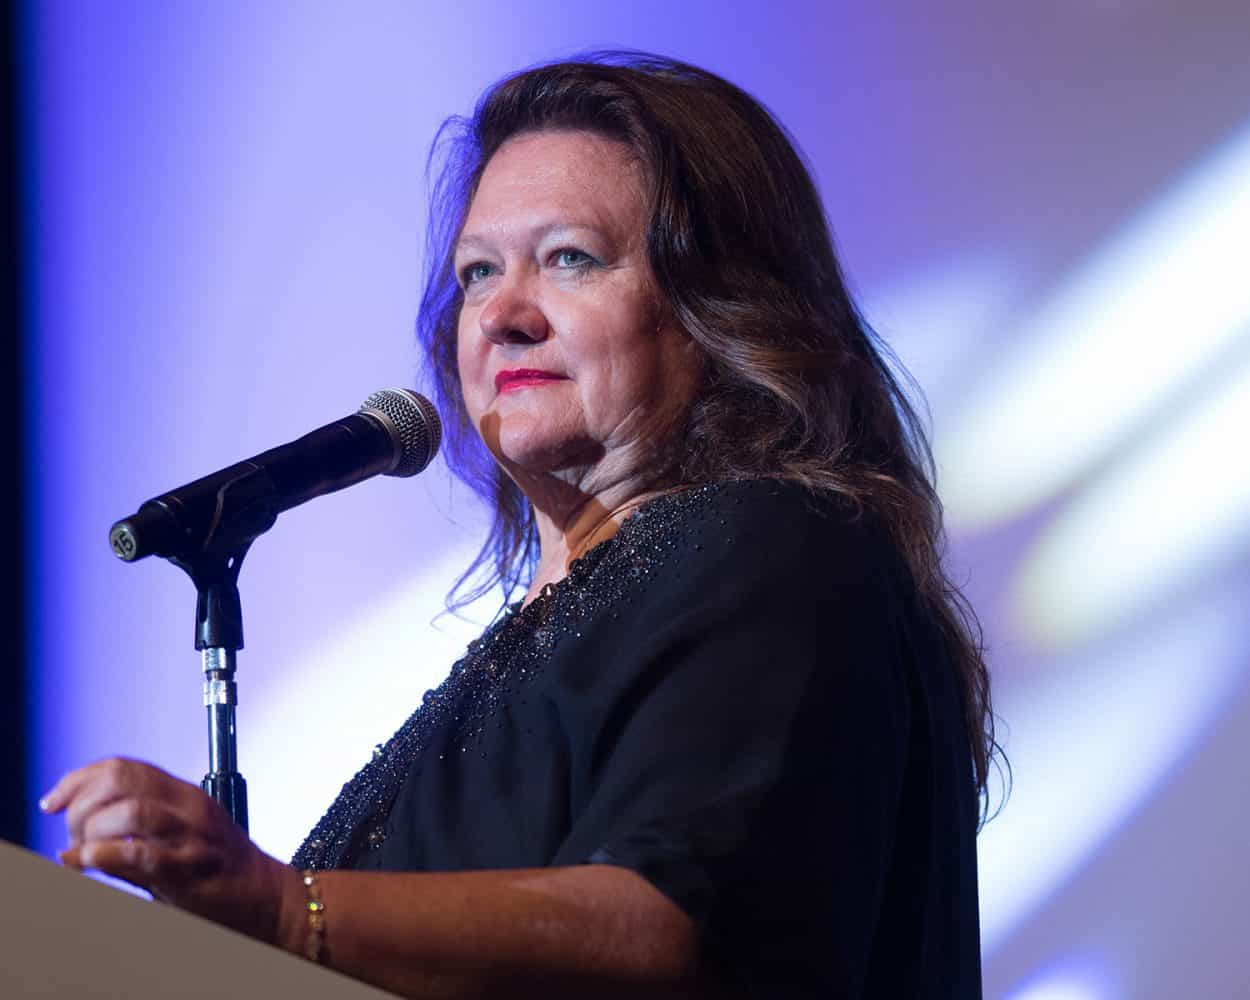 The 4 Tips for Success from Mining Magnate Gina Rinehart